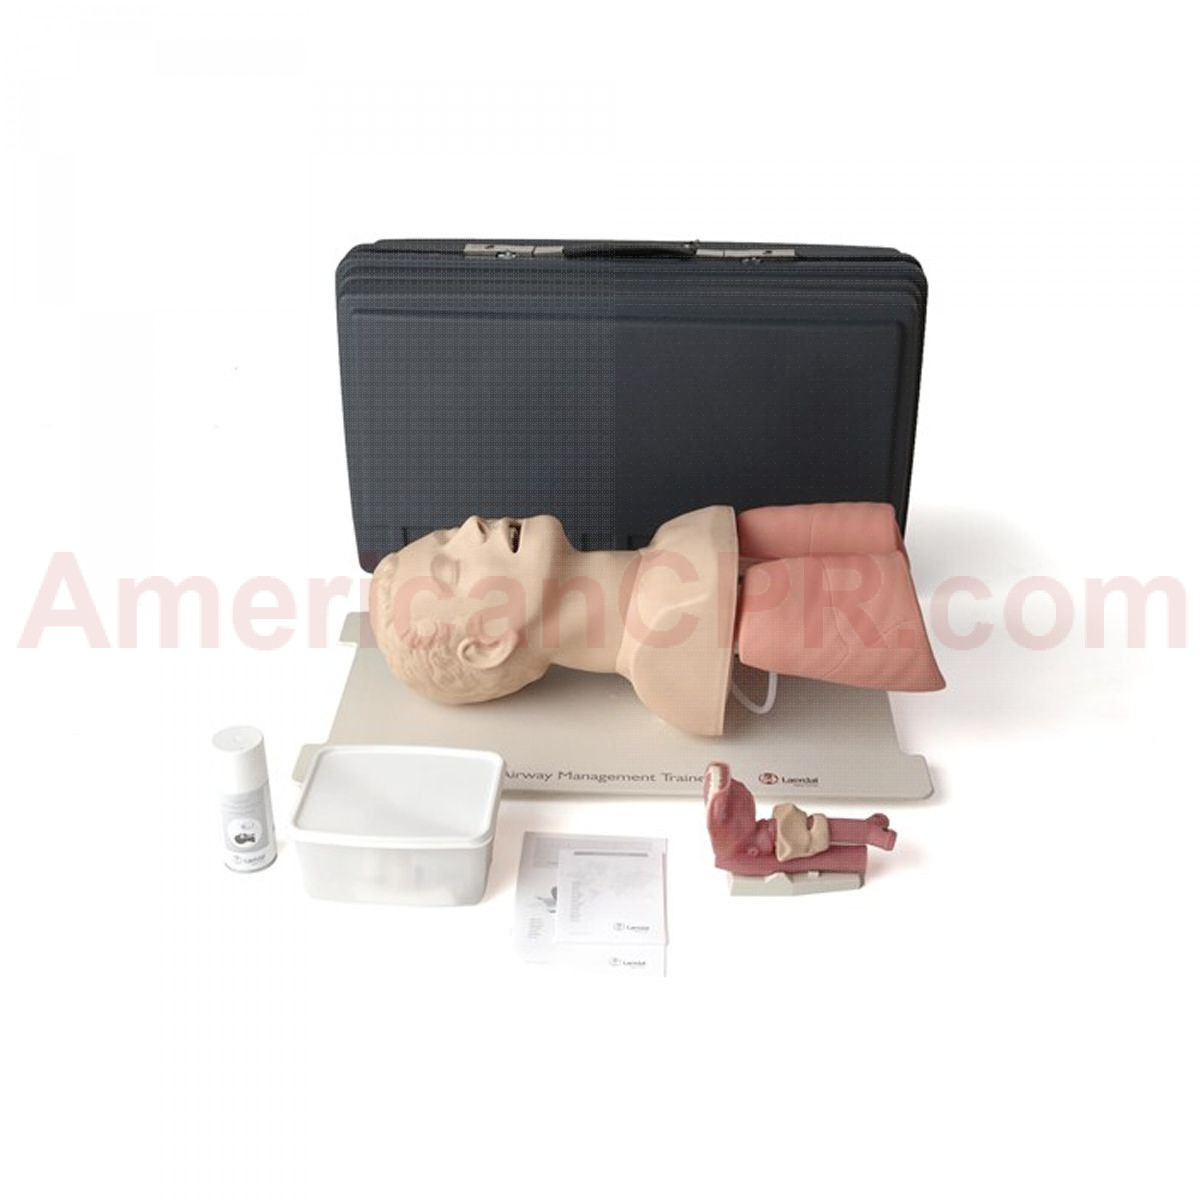 Laerdal Airway Management Trainer - Laerdal